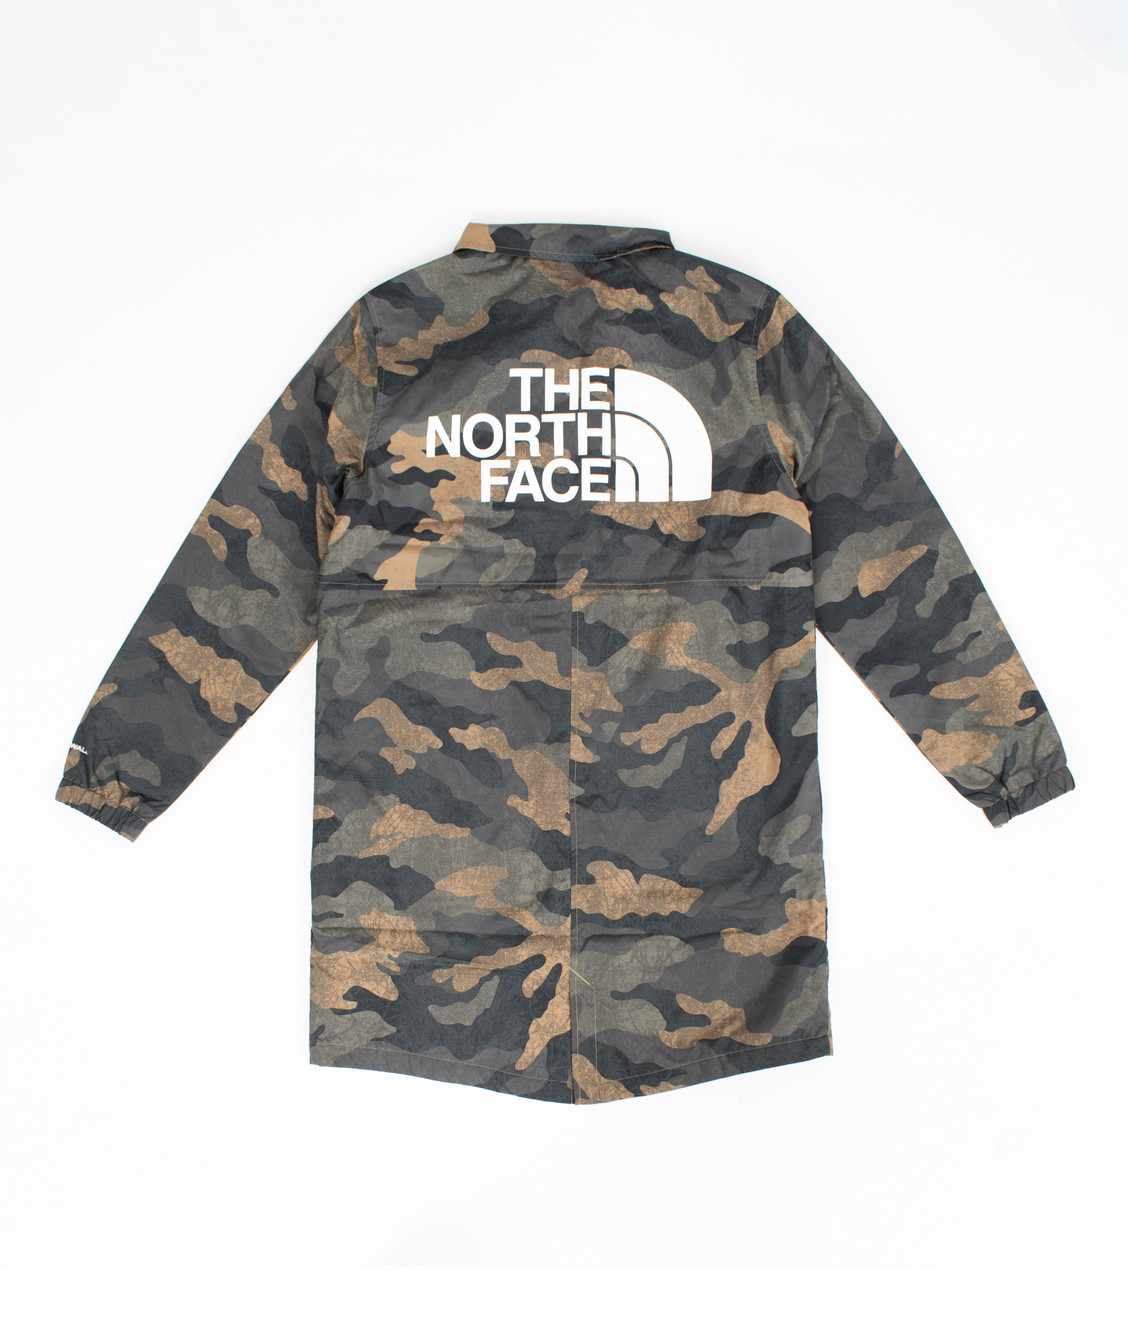 The North Face The North Face Coach Jacket Camo